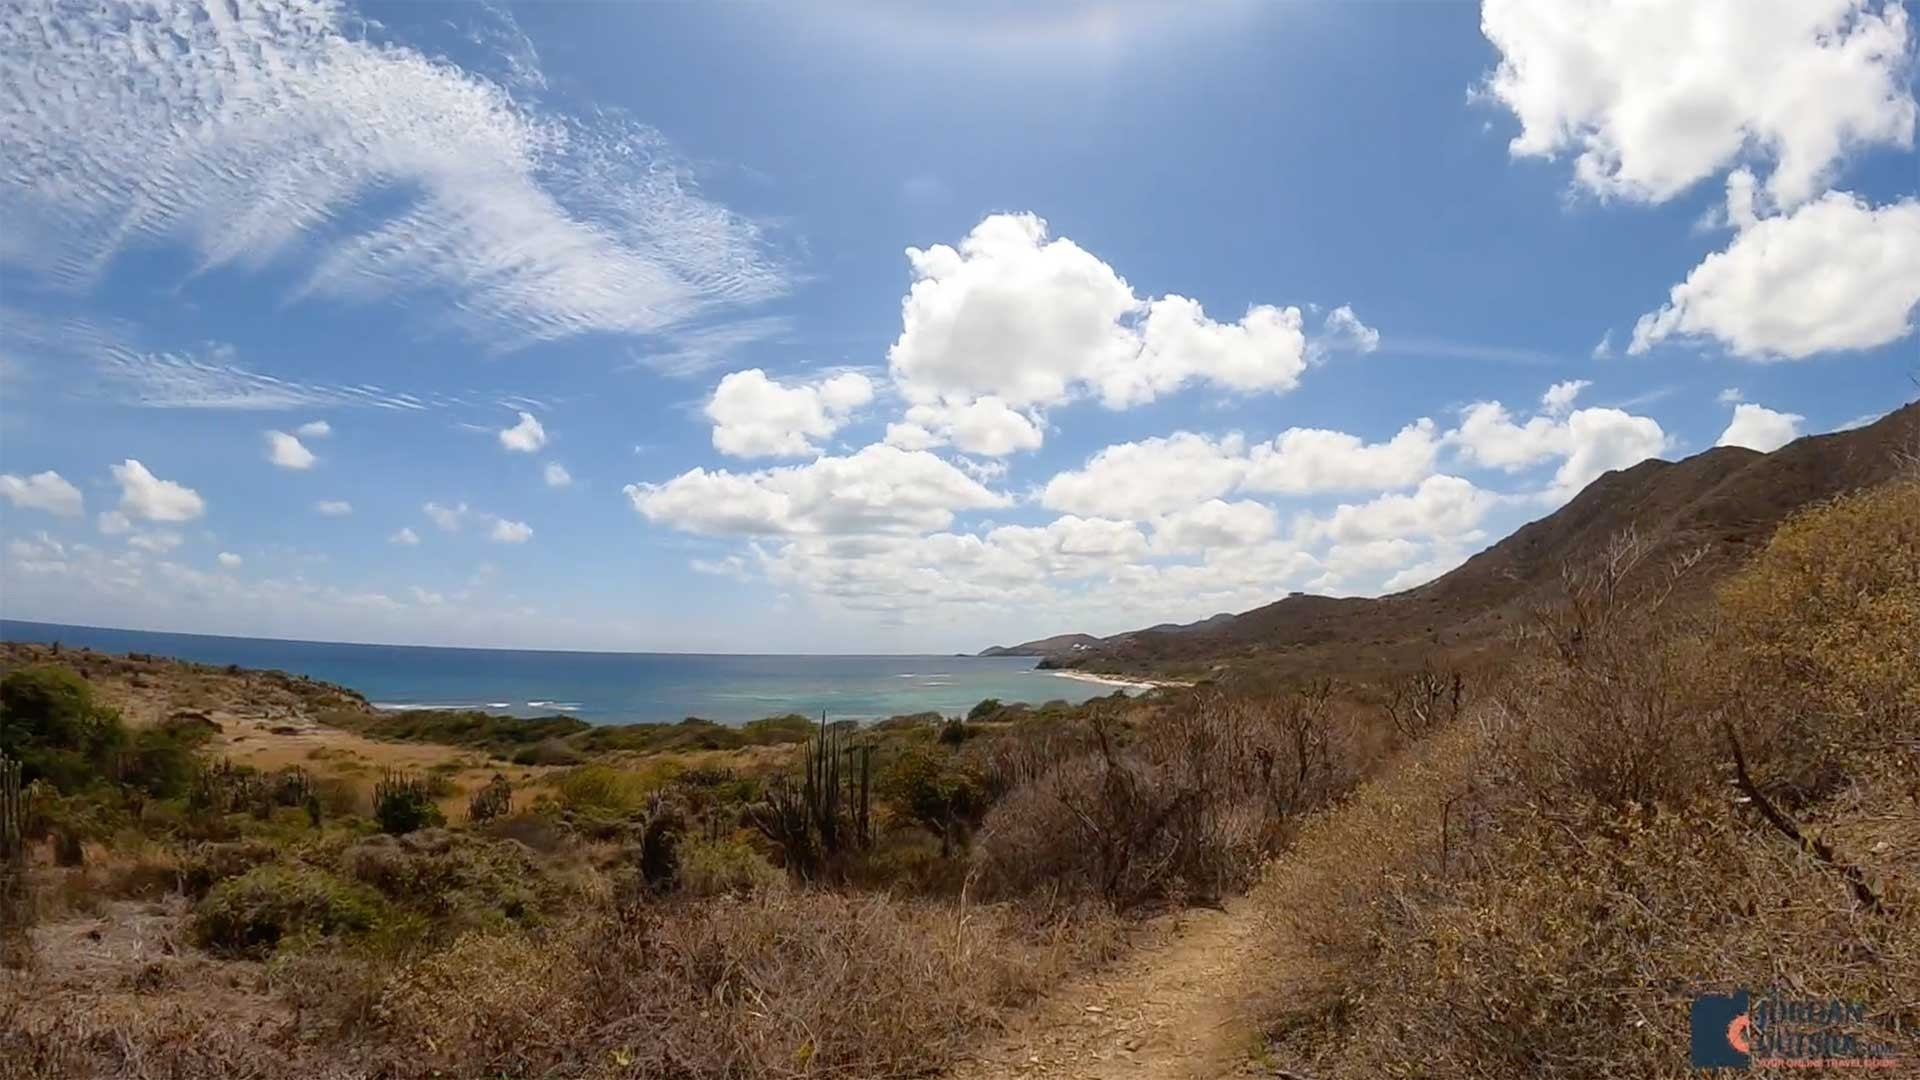 View of Jack's Bay Beach, St. Croix